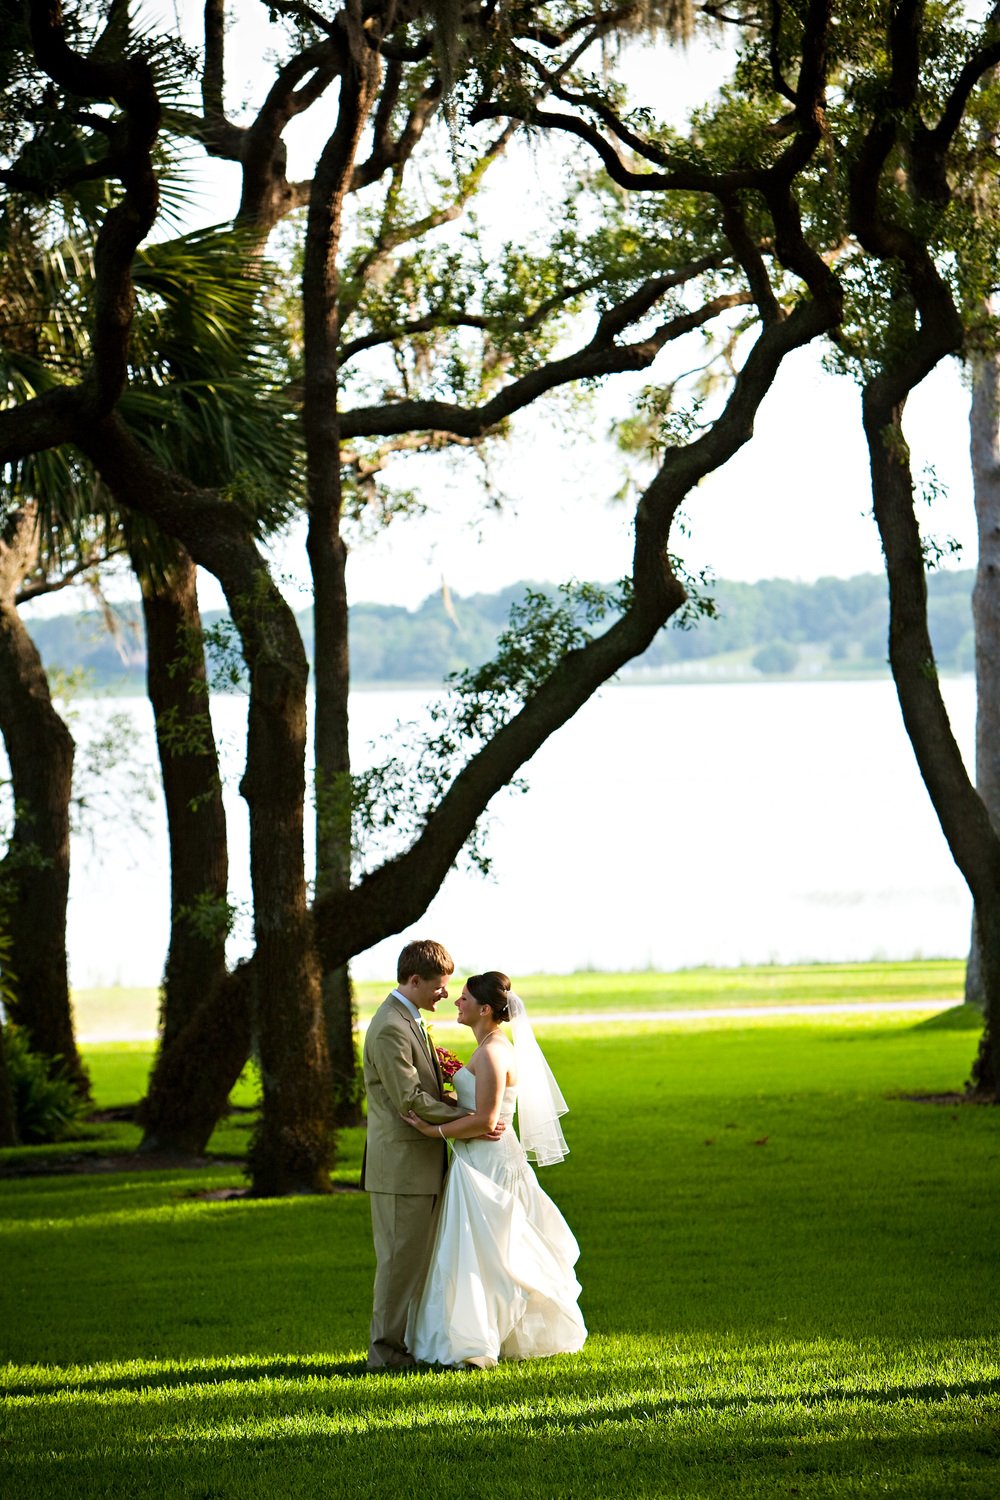 048_orlando_wedding_photographer_brian_adams_photographics.jpg